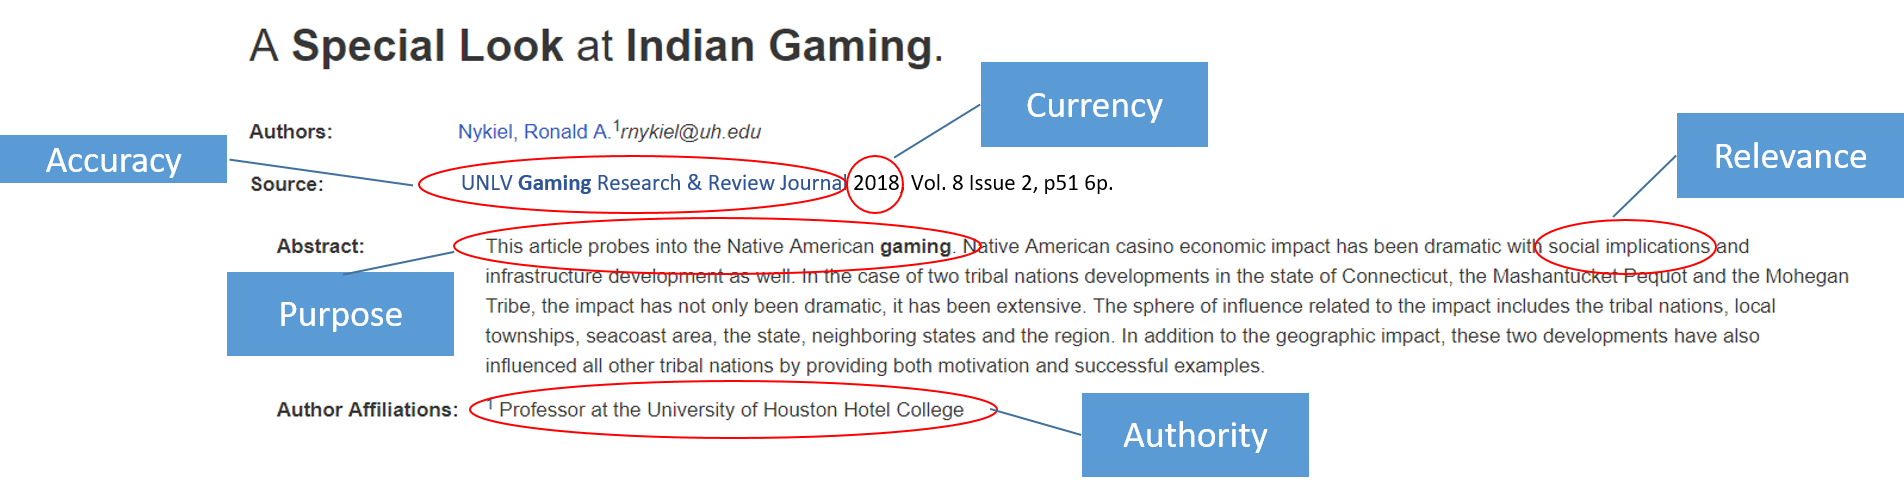 A special look at Indian Gaming article graphic